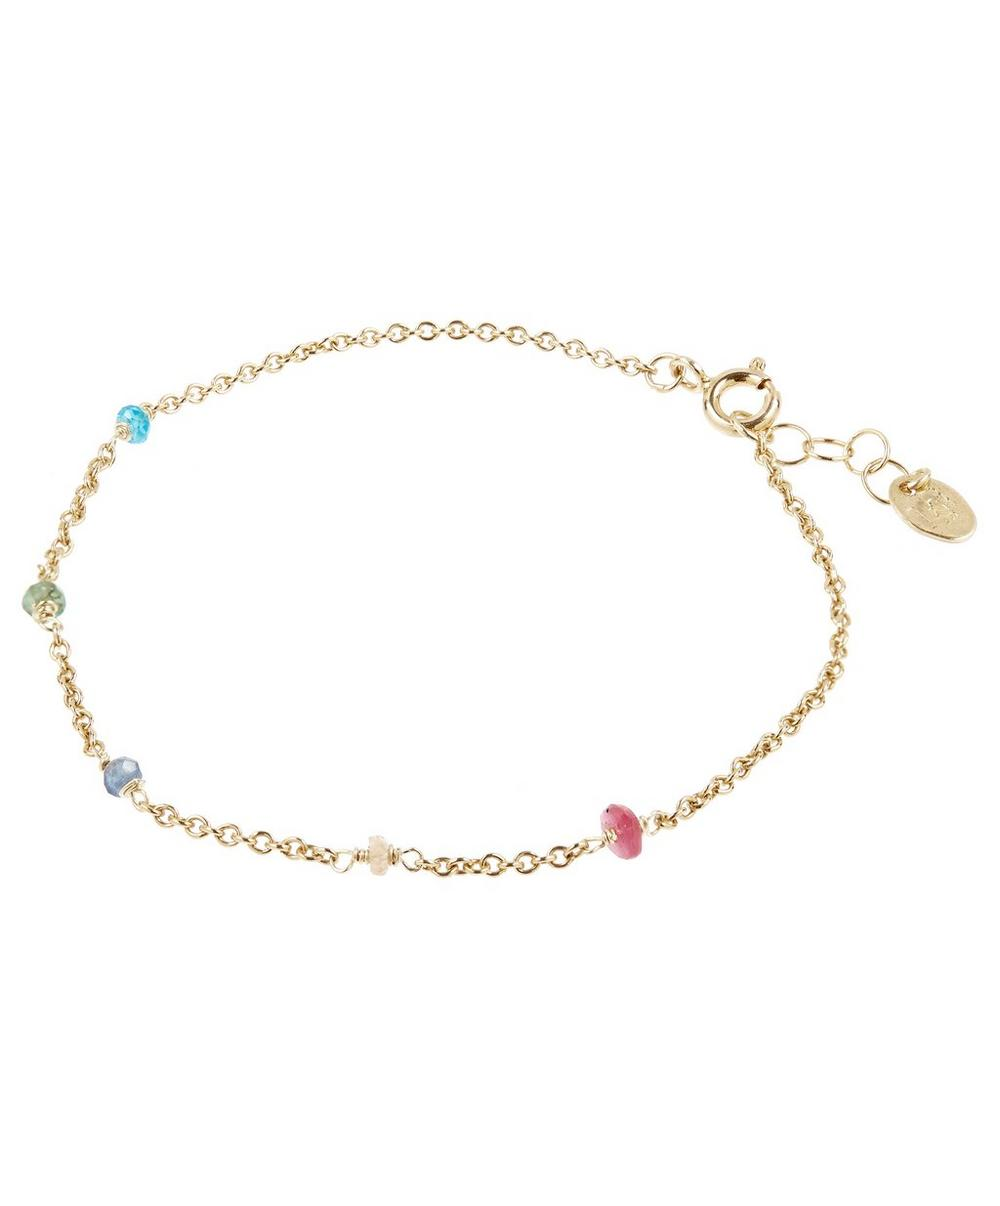 Gold-Plated Mixed Gem Loose Chain Bracelet